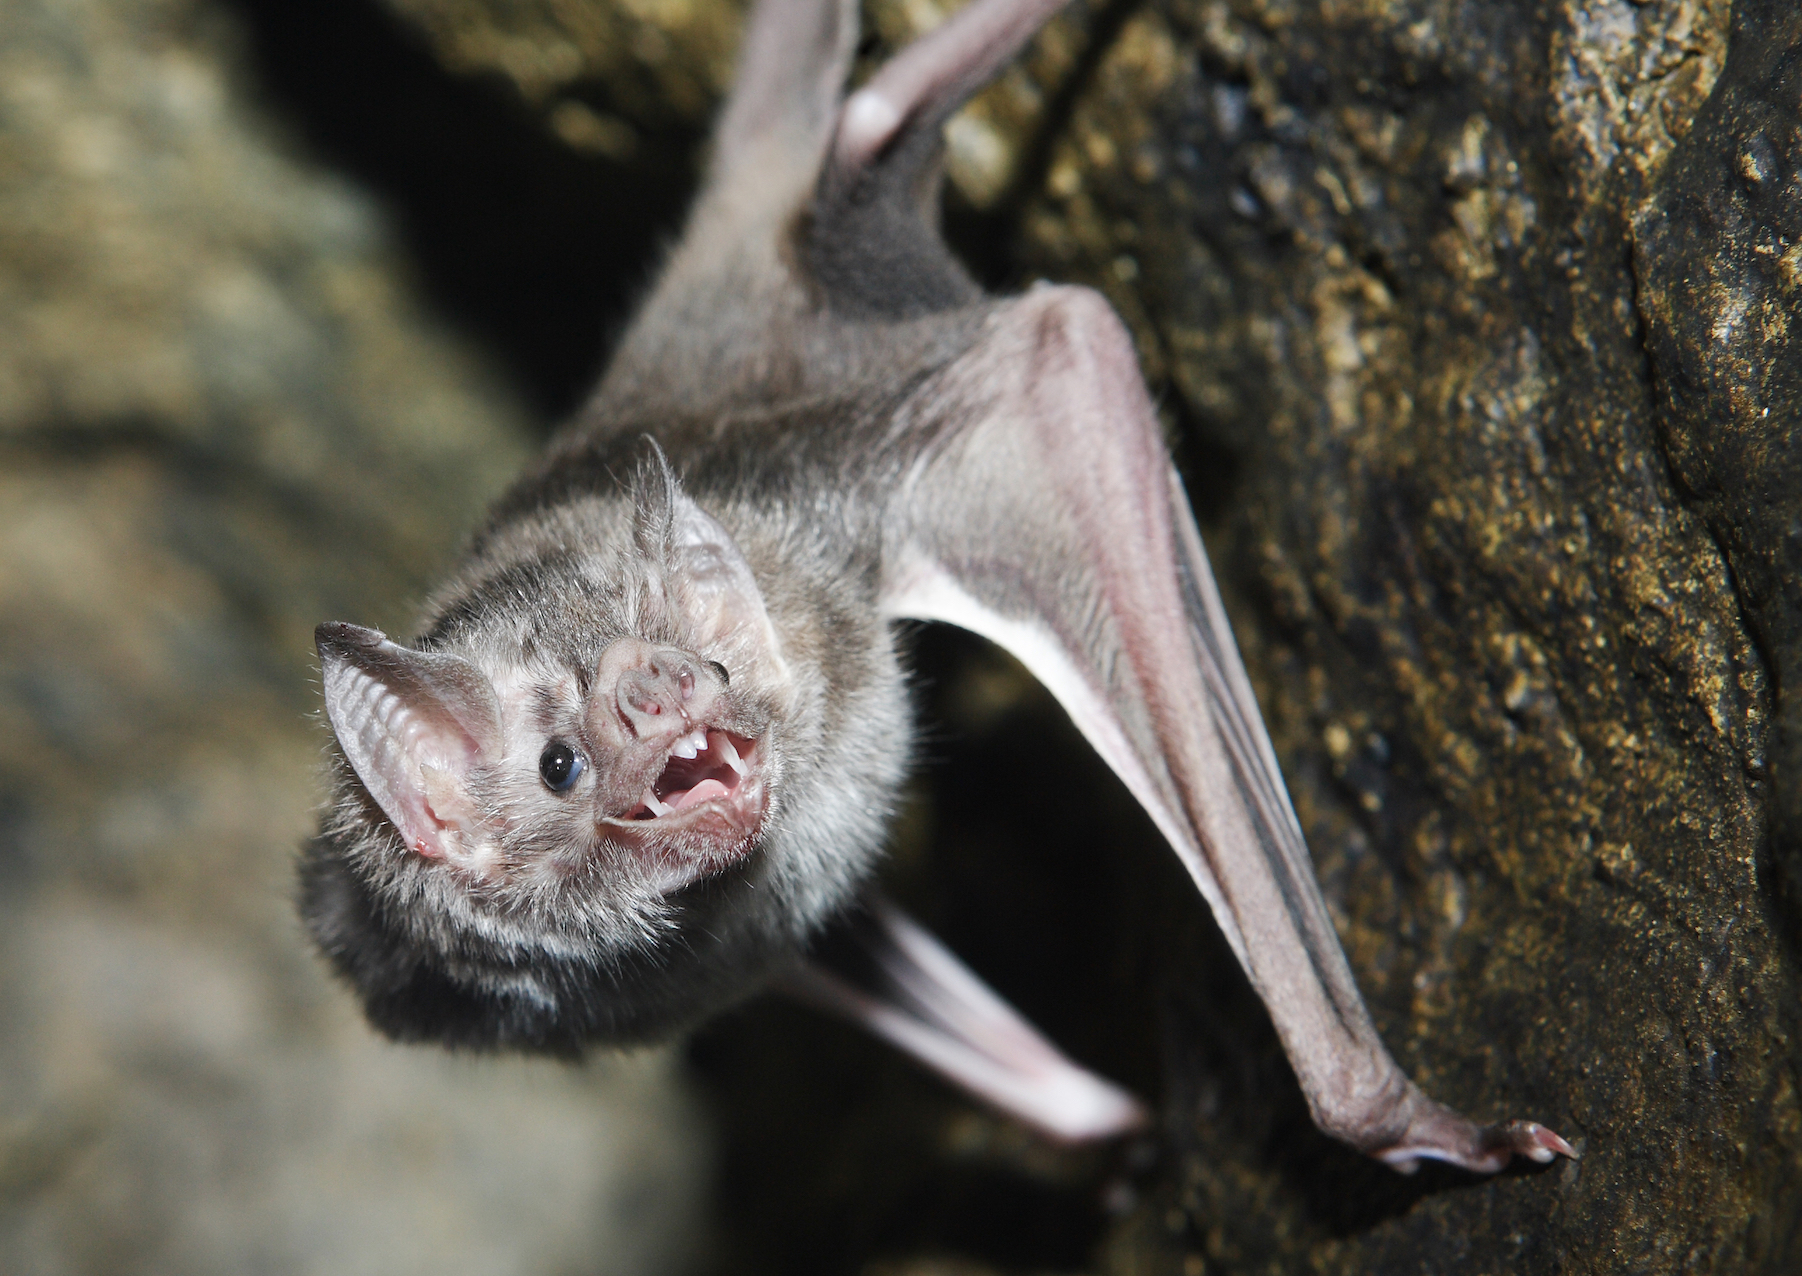 A new study has revealed the genomic and microbial adaptations that have enabled vampire bats to survive exclusively on blood.